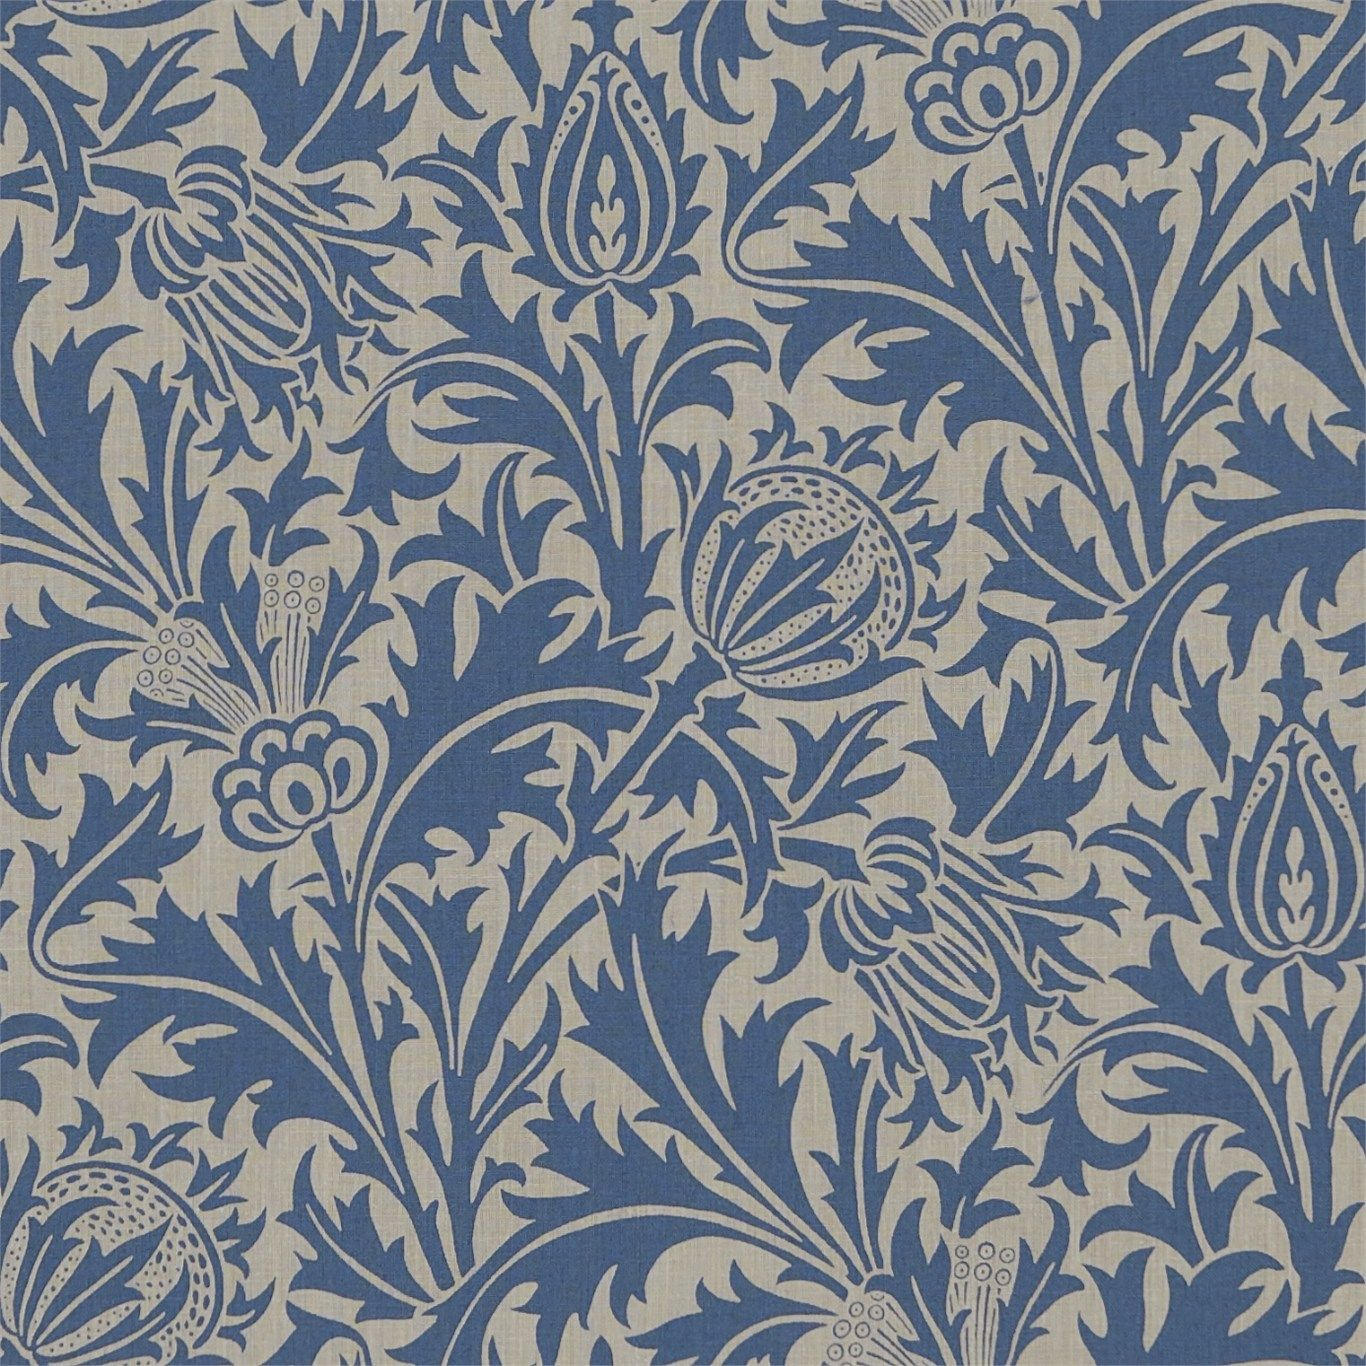 The Original Morris Co Arts And Crafts Fabrics And Wallpaper Designs By William Morris Comp Thistle Wallpaper William Morris Wallpaper Morris Wallpapers